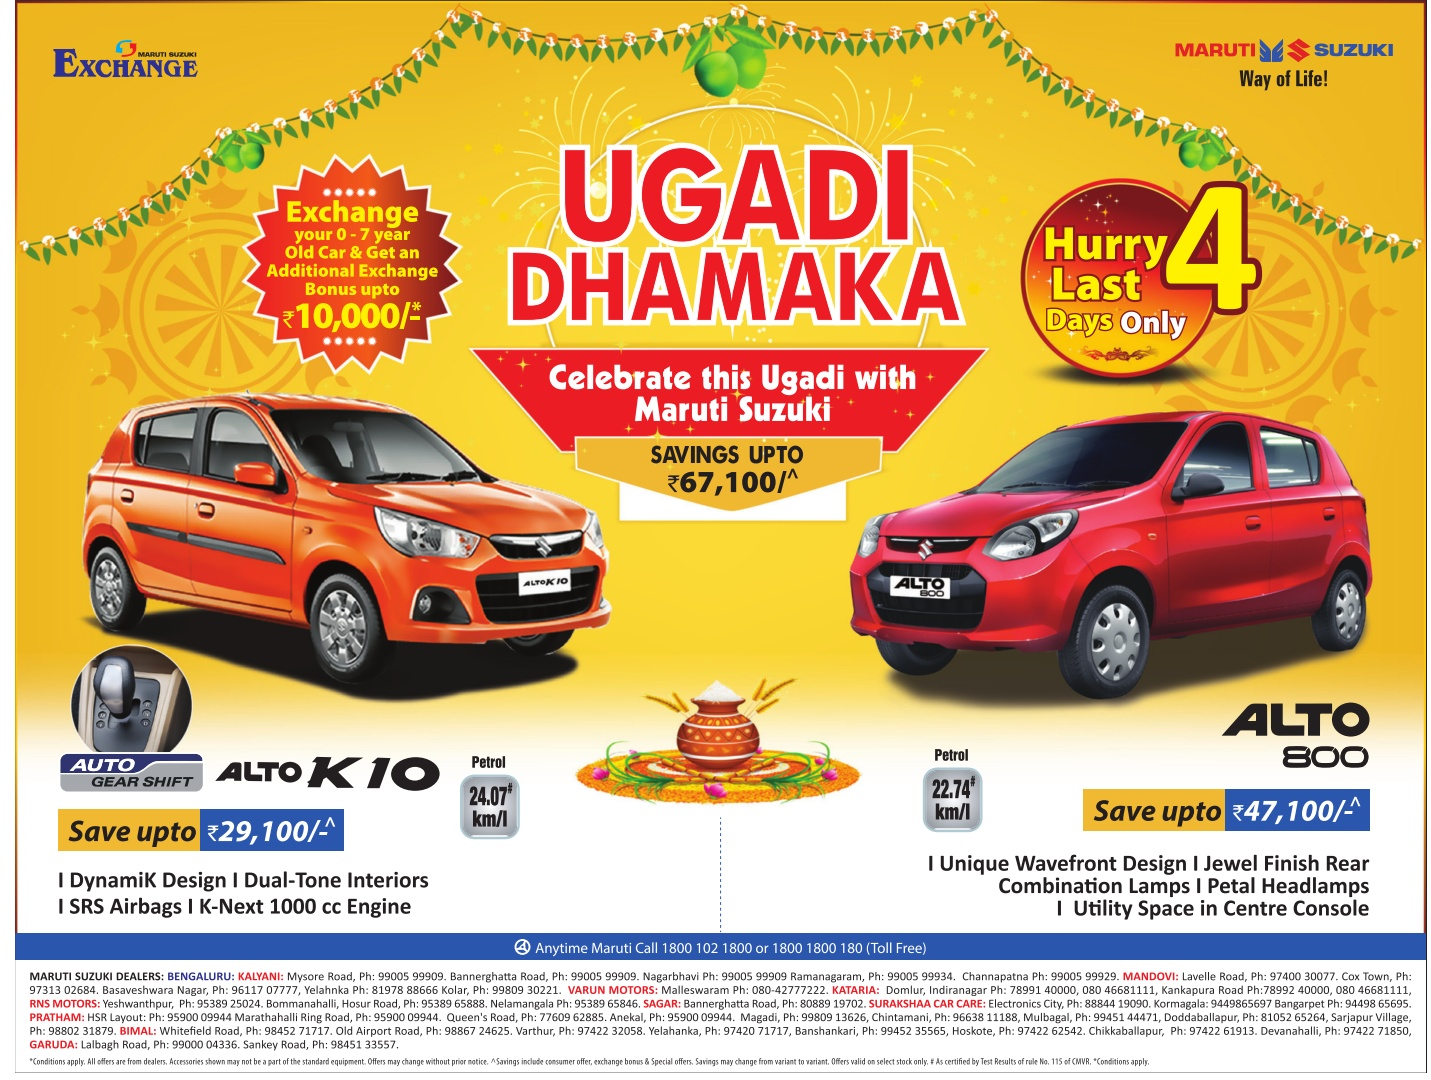 Maruthi Suzuki Ugadi Dhamaka | Savings up to Rs 67,100 | April 2016 ugadi festival discount offer